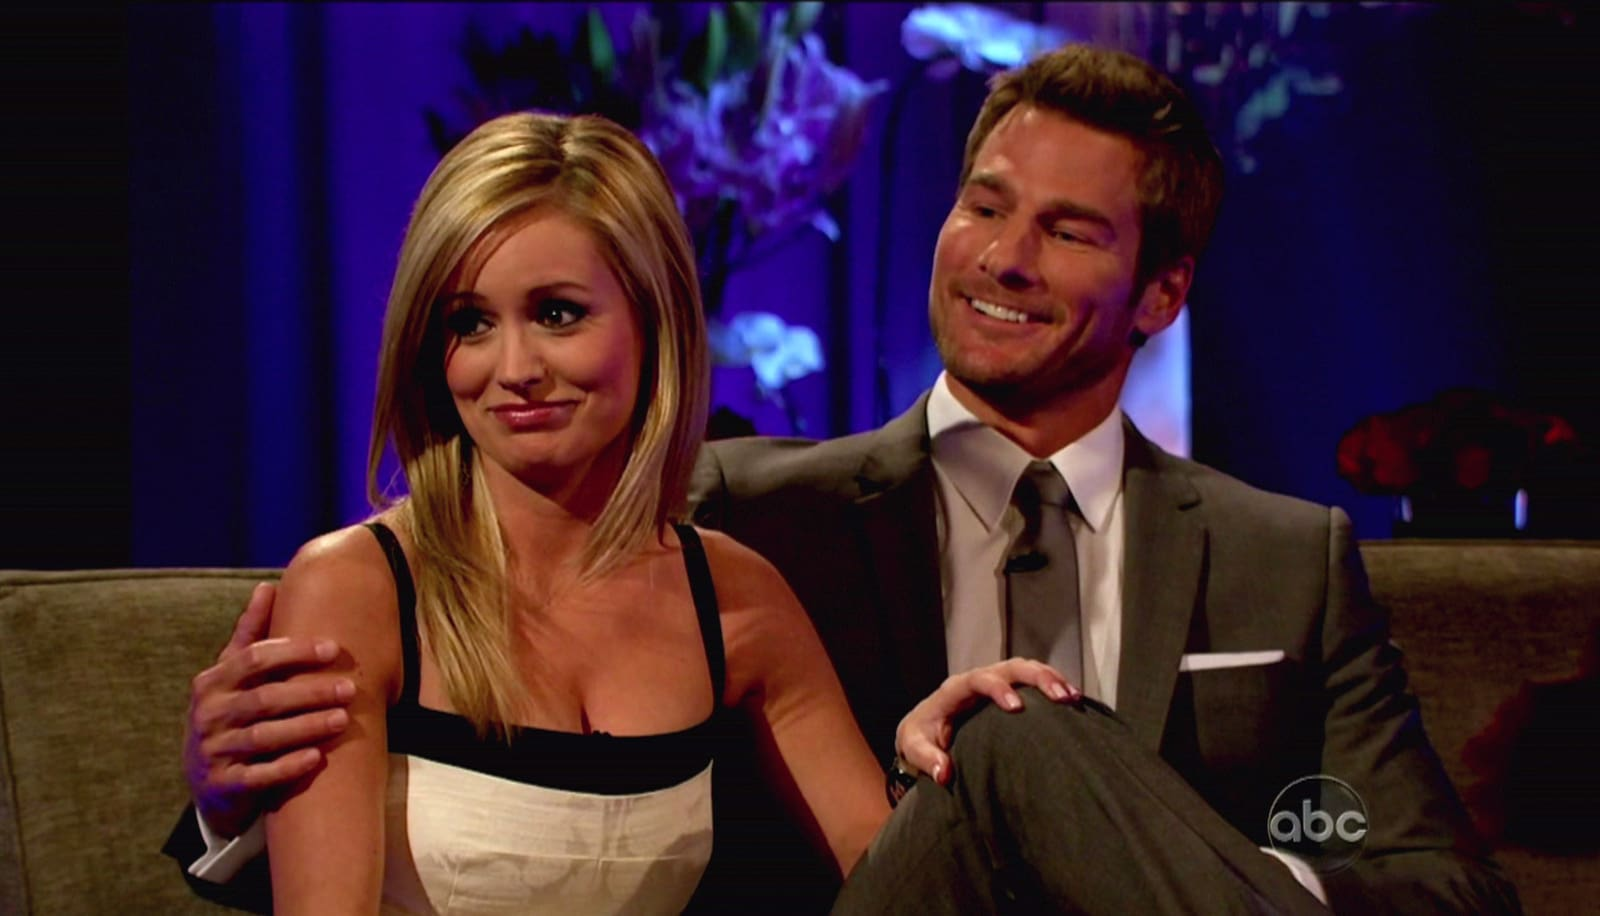 Who is emily the bachelorette dating now